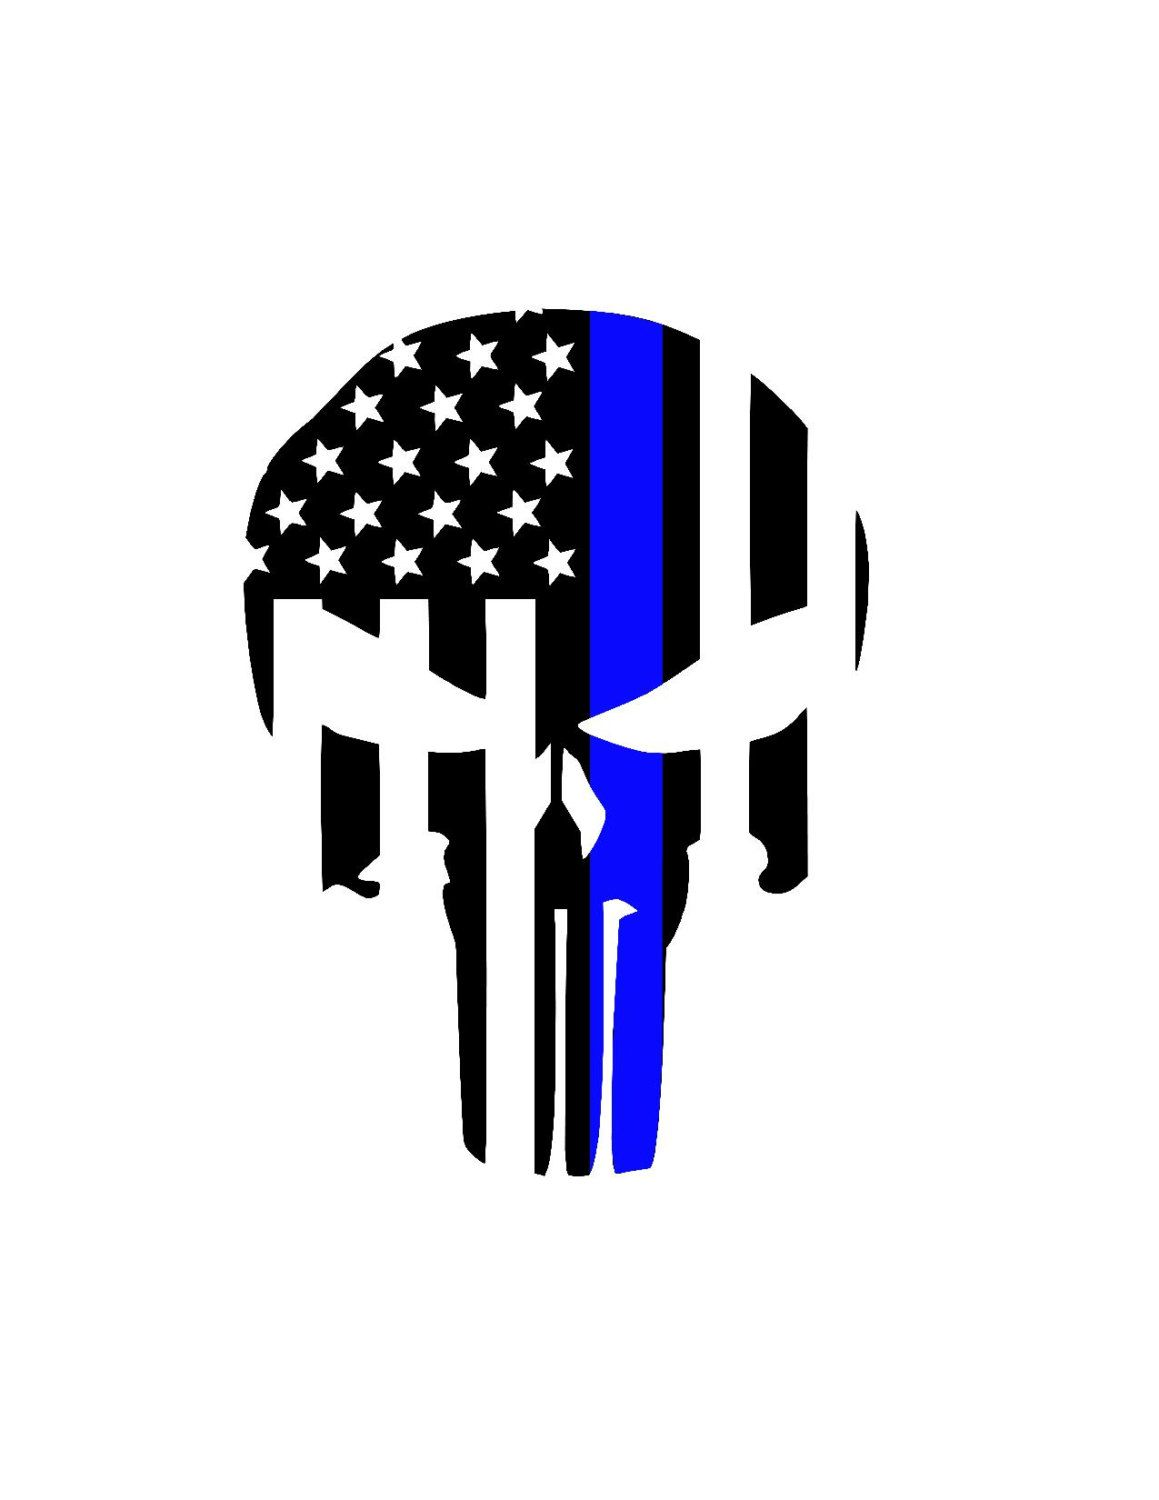 Punisher skull back the blue police lives matter decal yeti decal car decal support police wife family back the blue sticker by